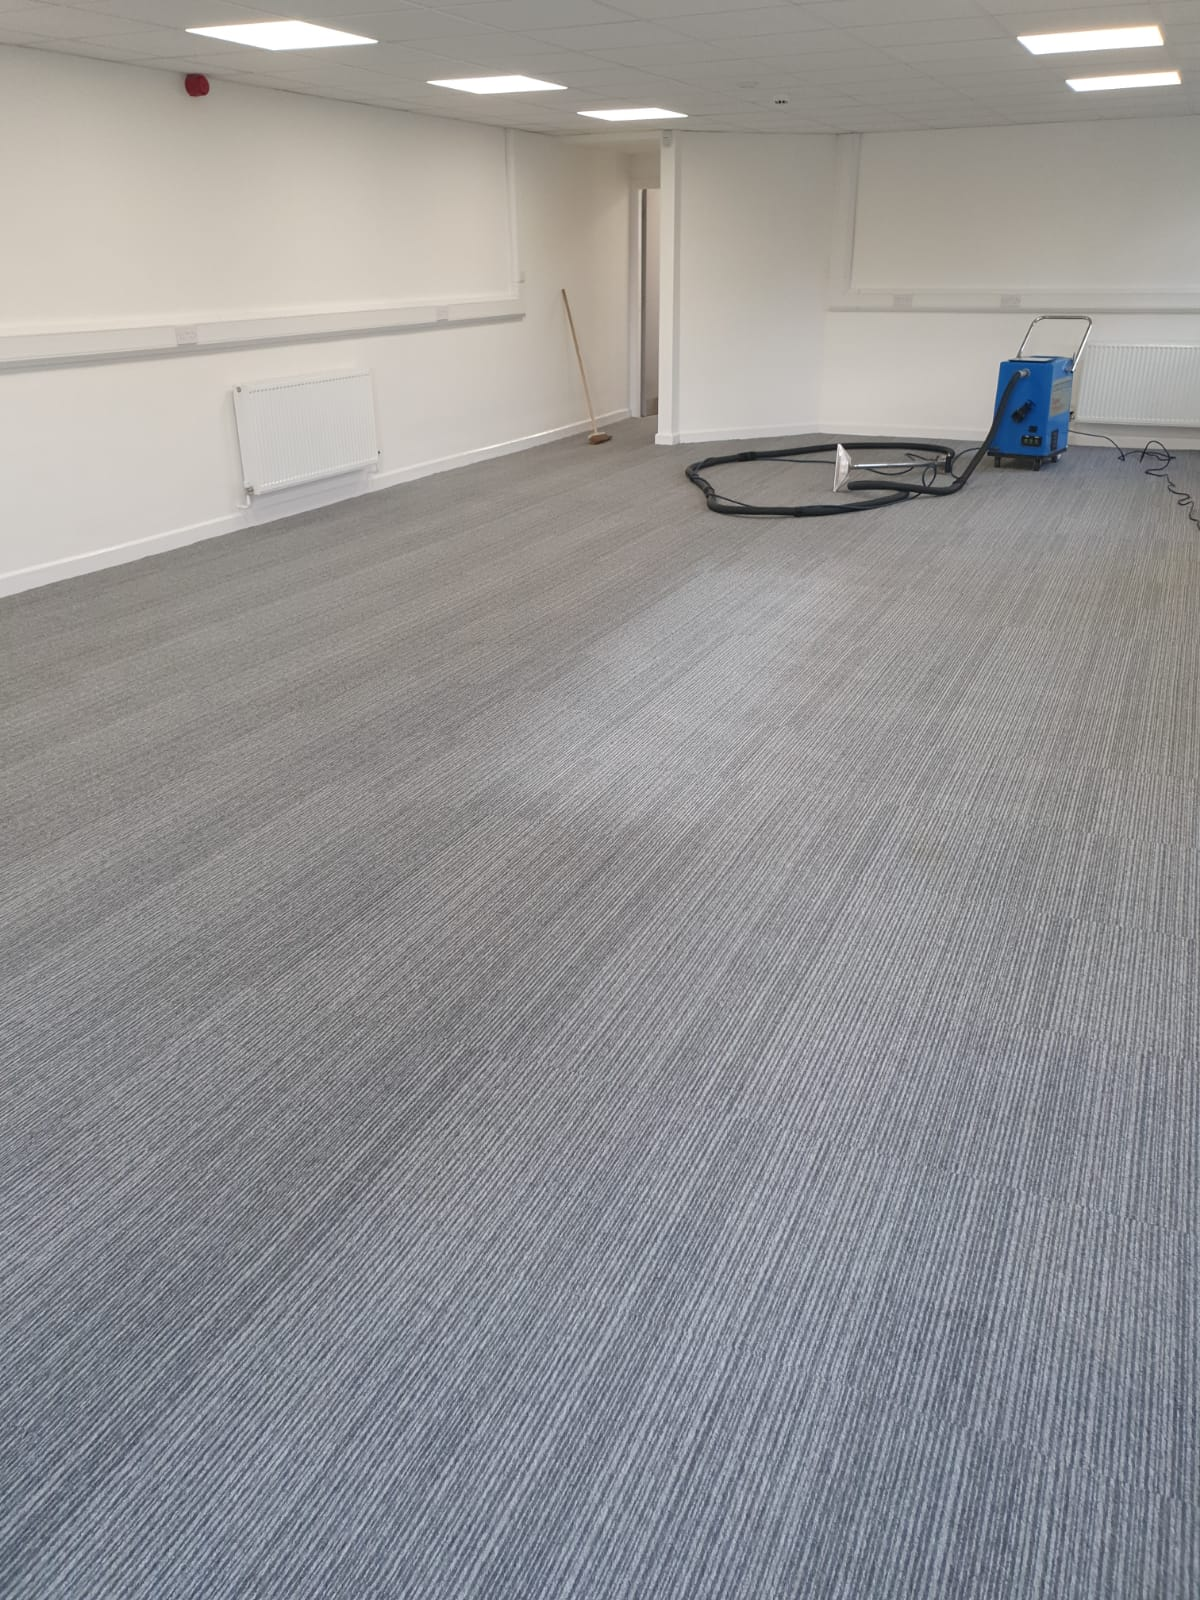 Commercial Carpet Cleaning Hunslet, Leed. PCC (1)